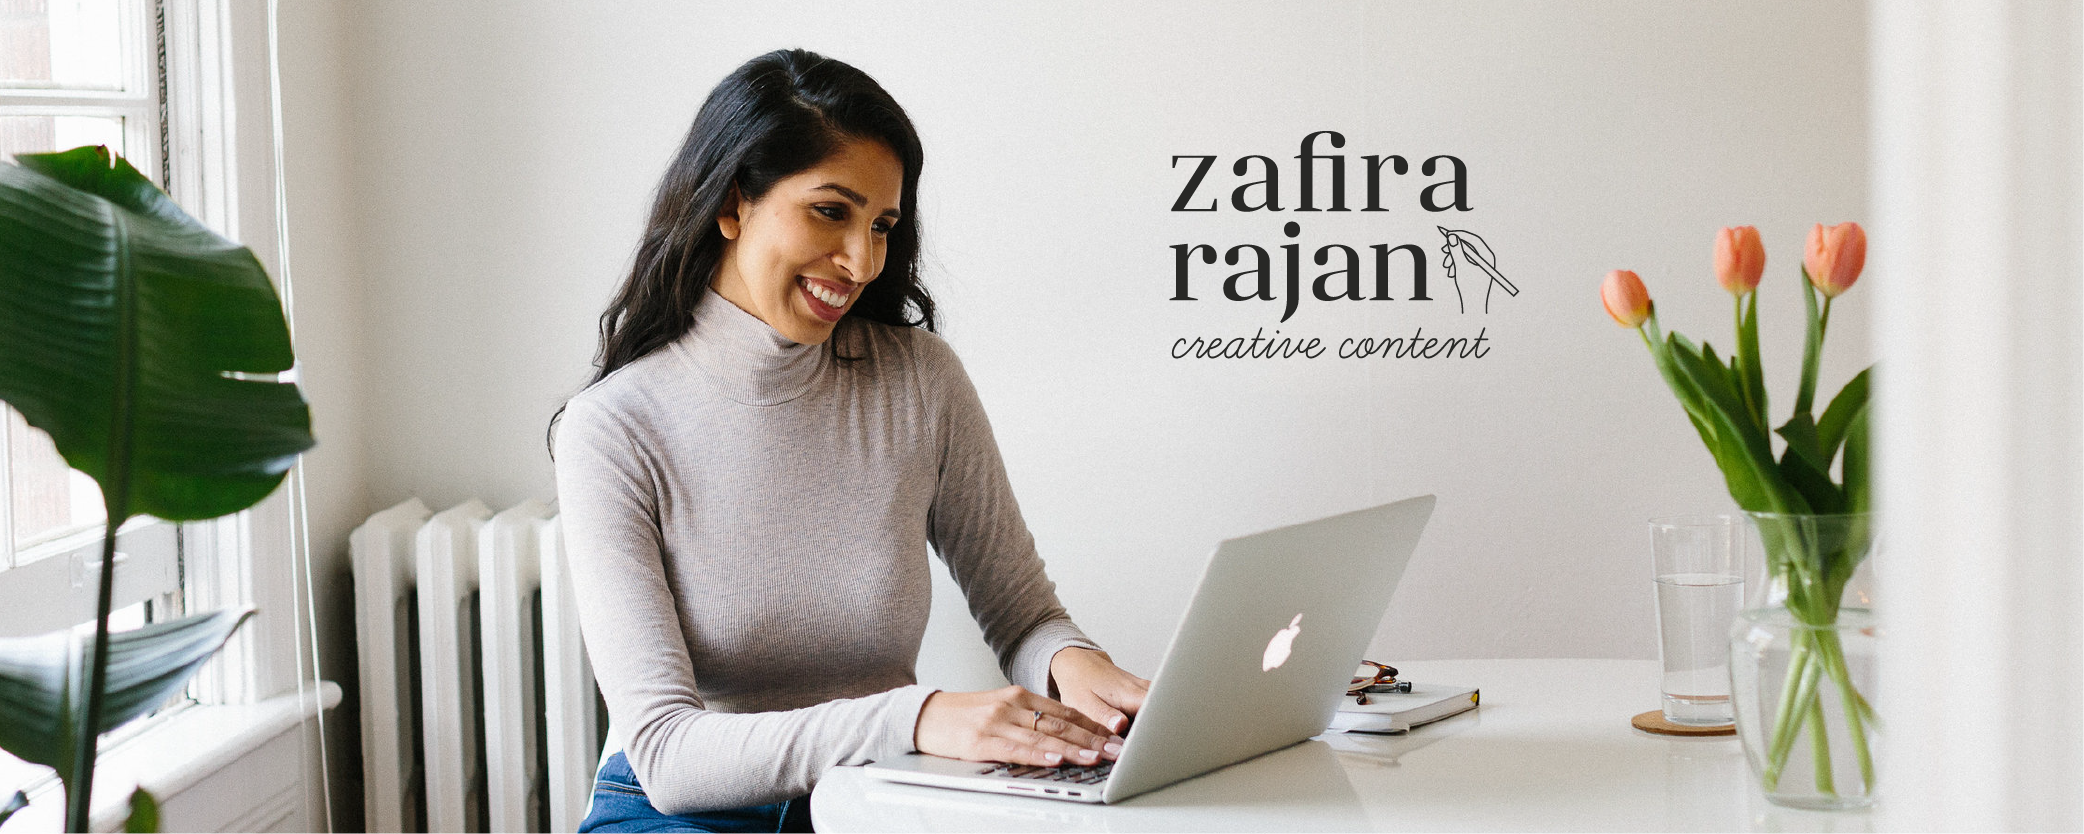 Photo of Zafira Rajan by Alexa Mazzarello Creative with logo designed by Salt Design Co. on top of the photo.